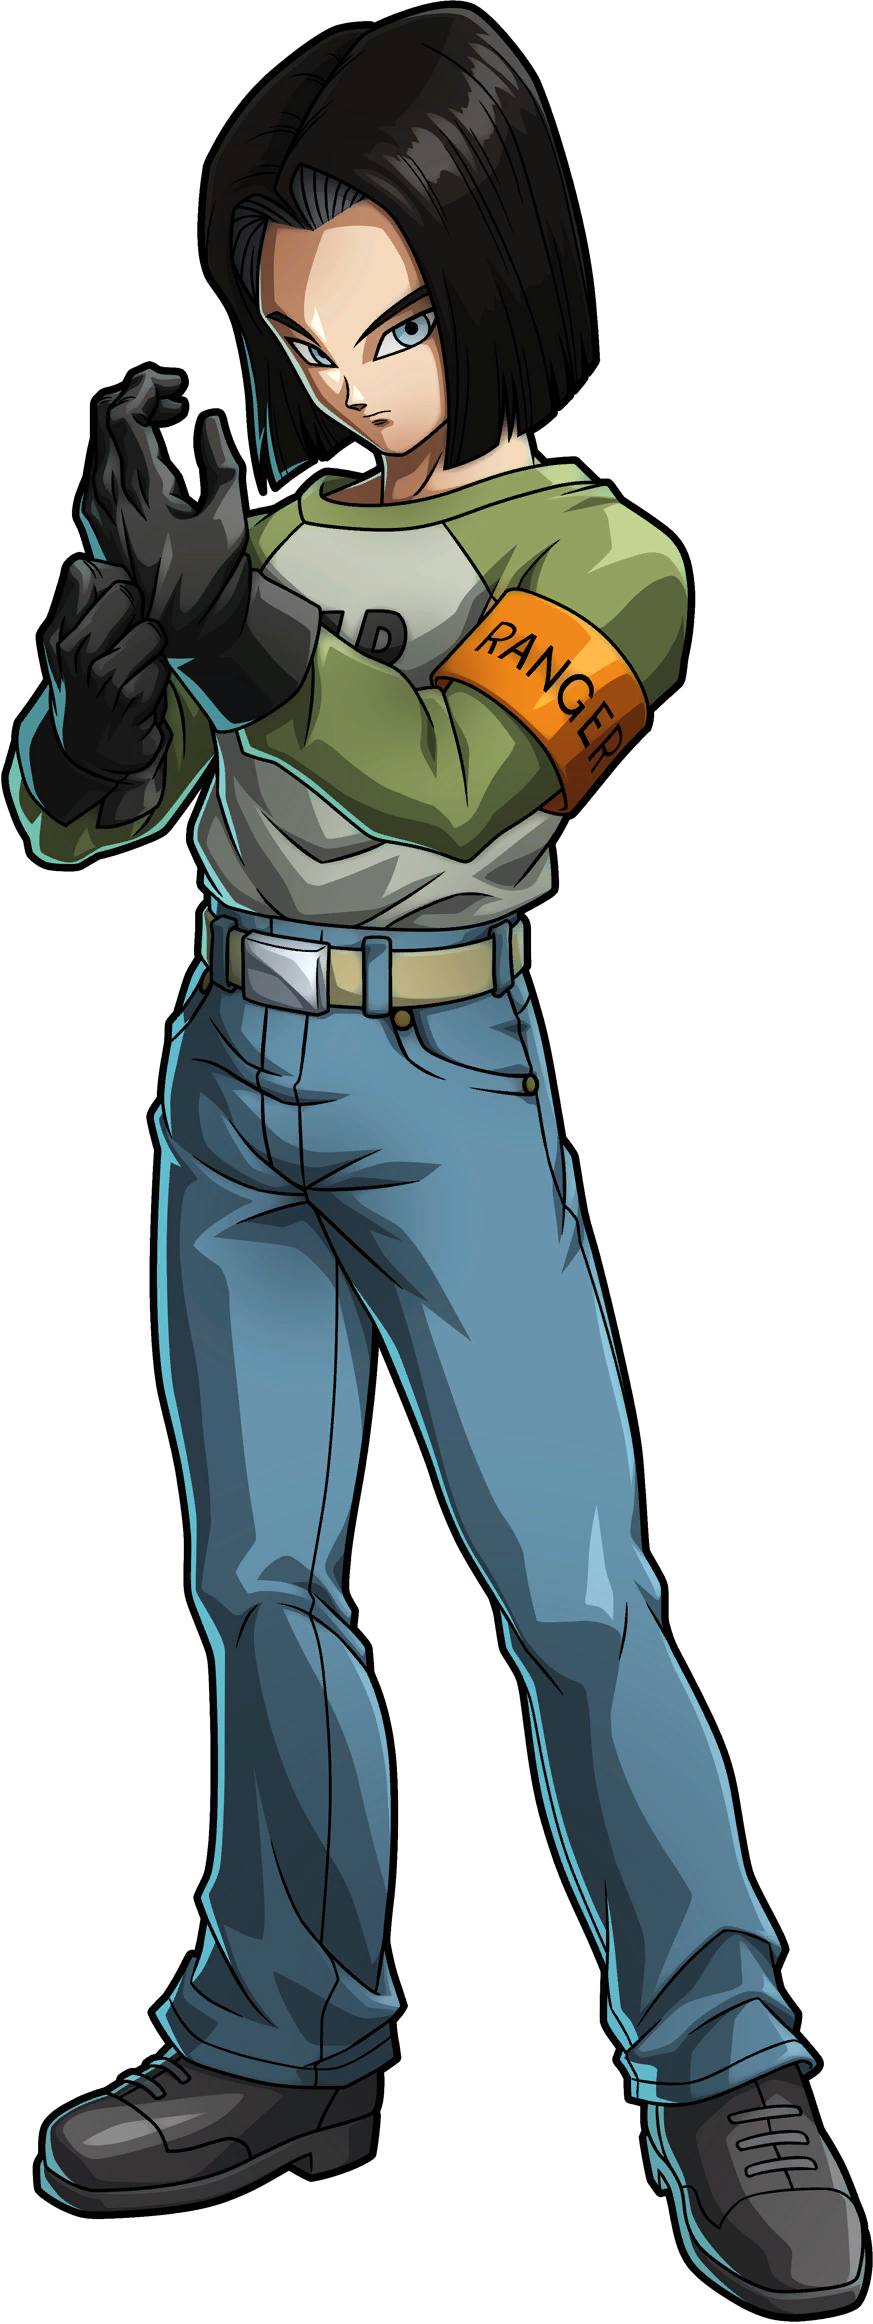 Ranger Andrid 17 Render (Dragon Ball FighterZ).png